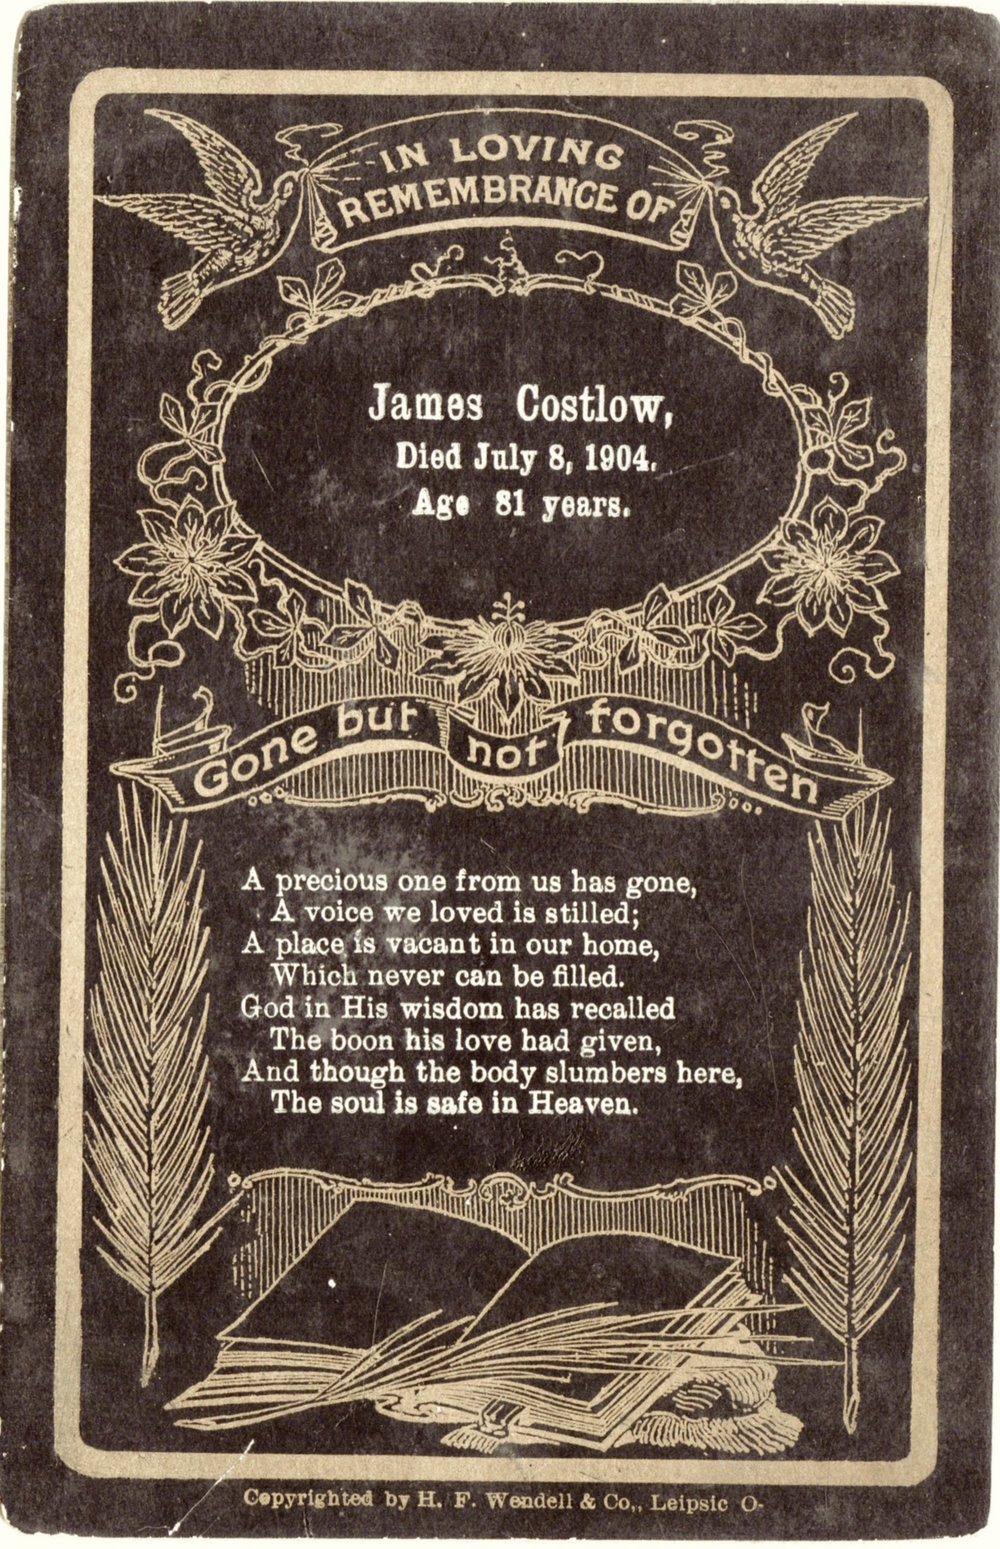 Funeral Card for James Costlow (1822-1904)